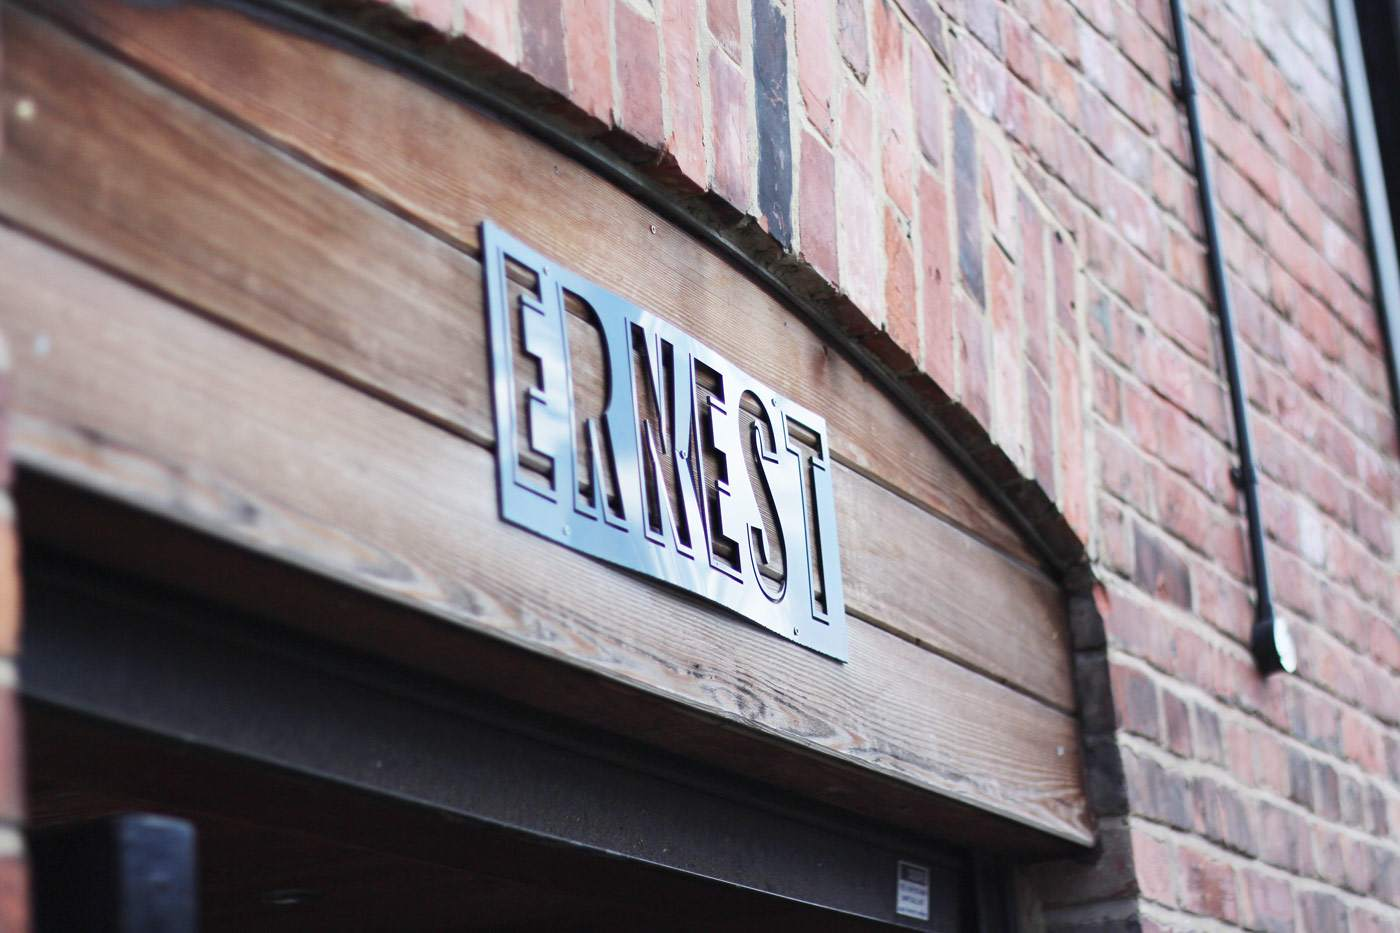 new-earnest-newcastle-ouseburn-review-travel-lifestyle-blogger-north-east-.2